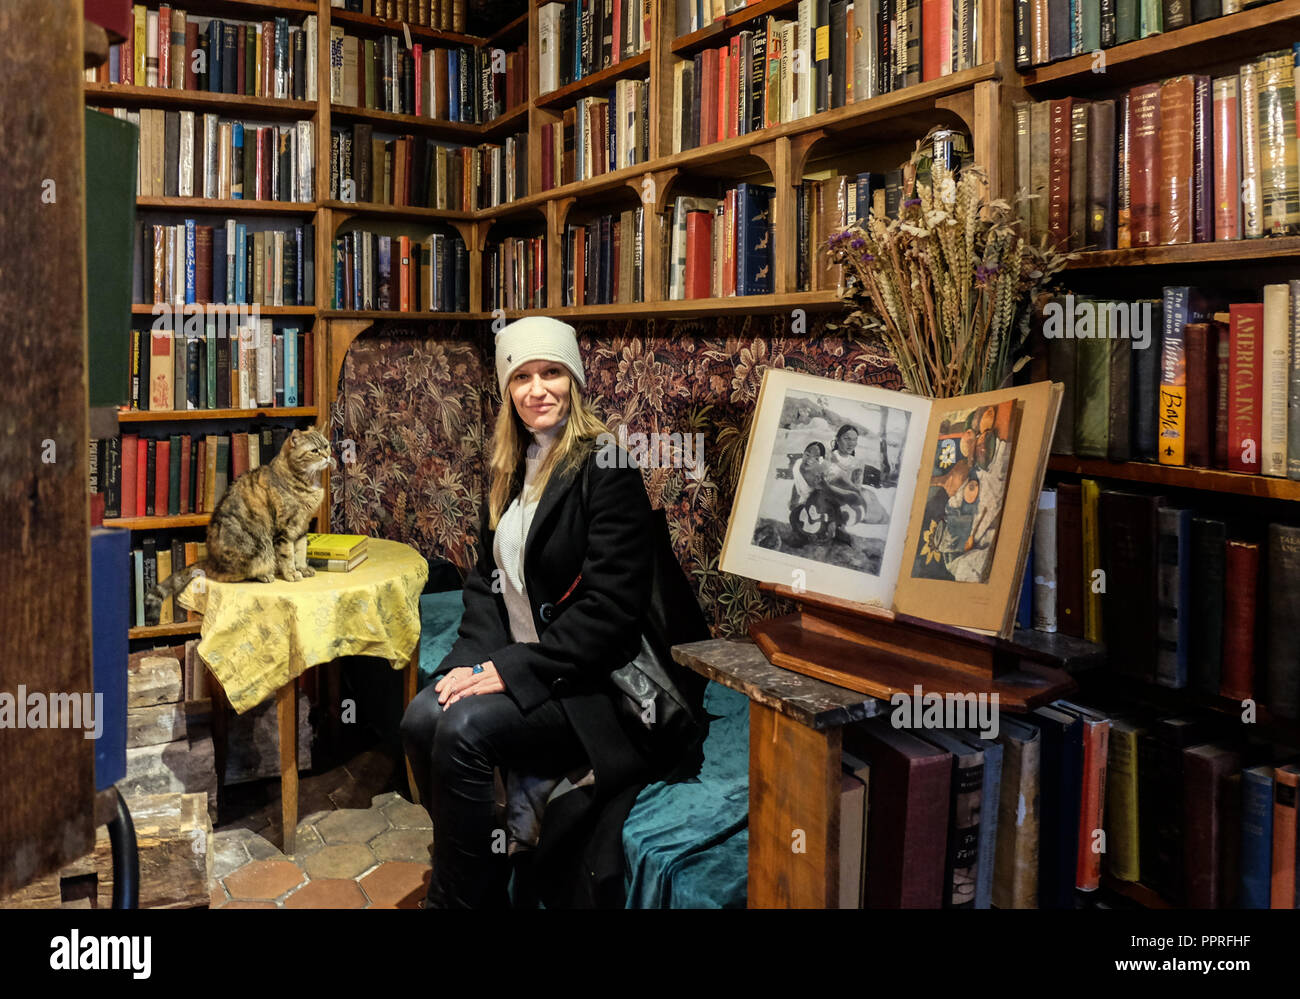 Paris, France - November 2017: Woman and cat sitting in  front of shelves full of old books. Shakespeare & Company, Paris, France. - Stock Image